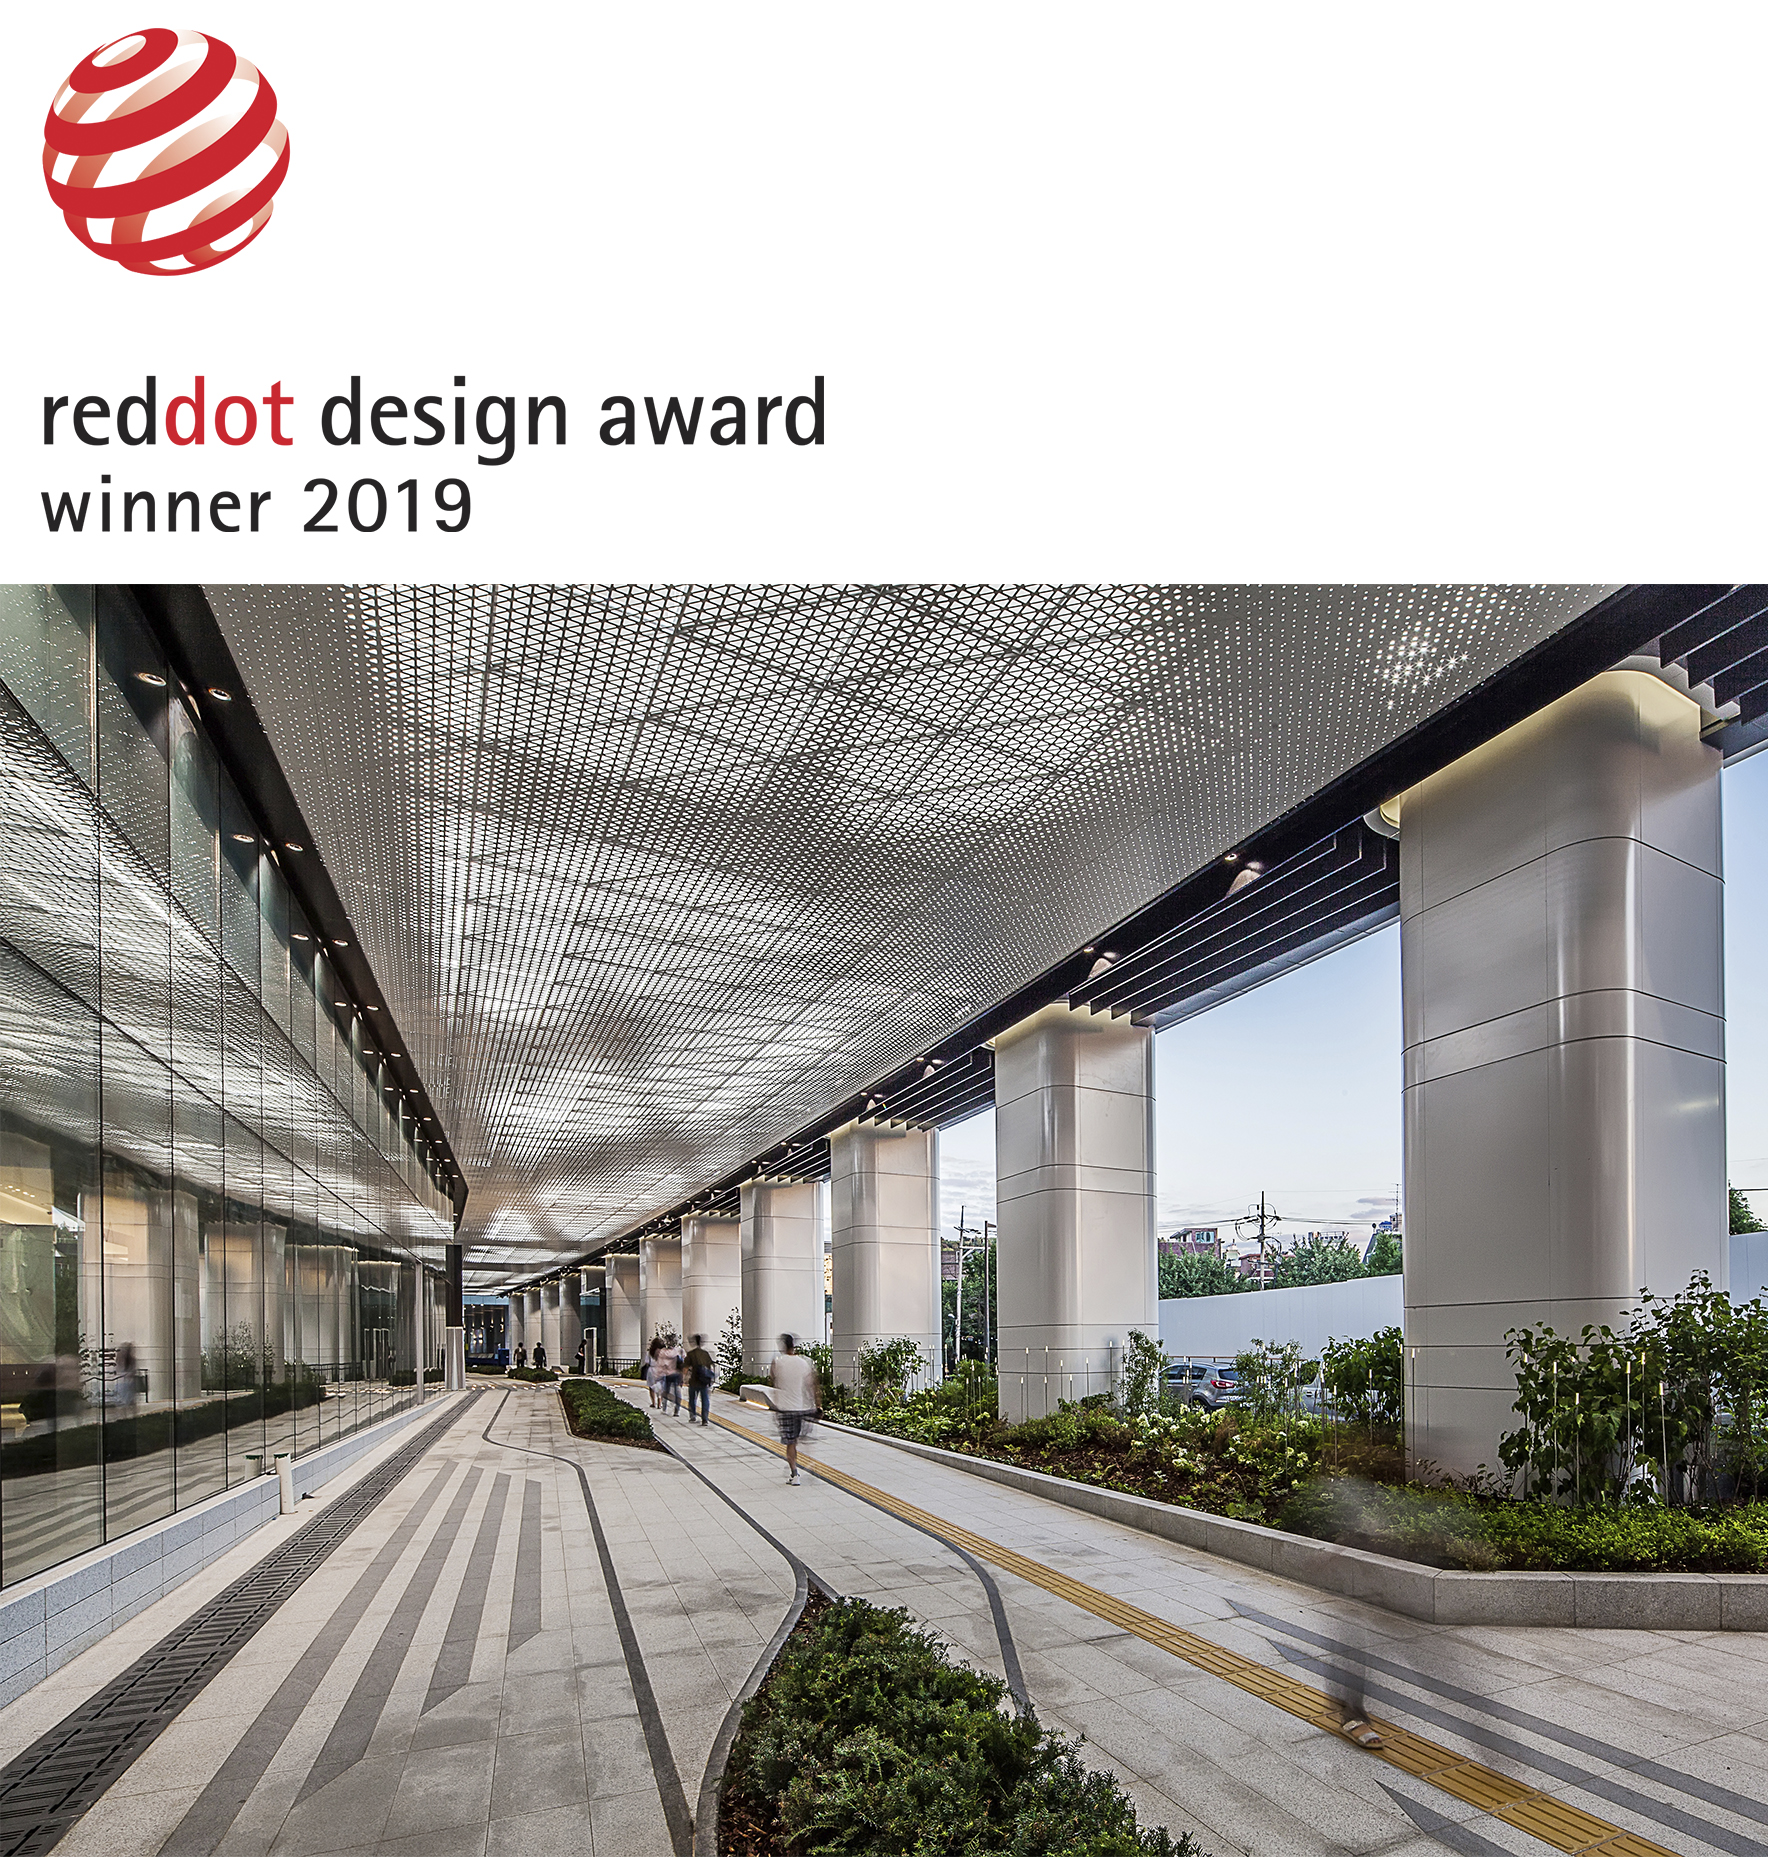 2019 reddot design award